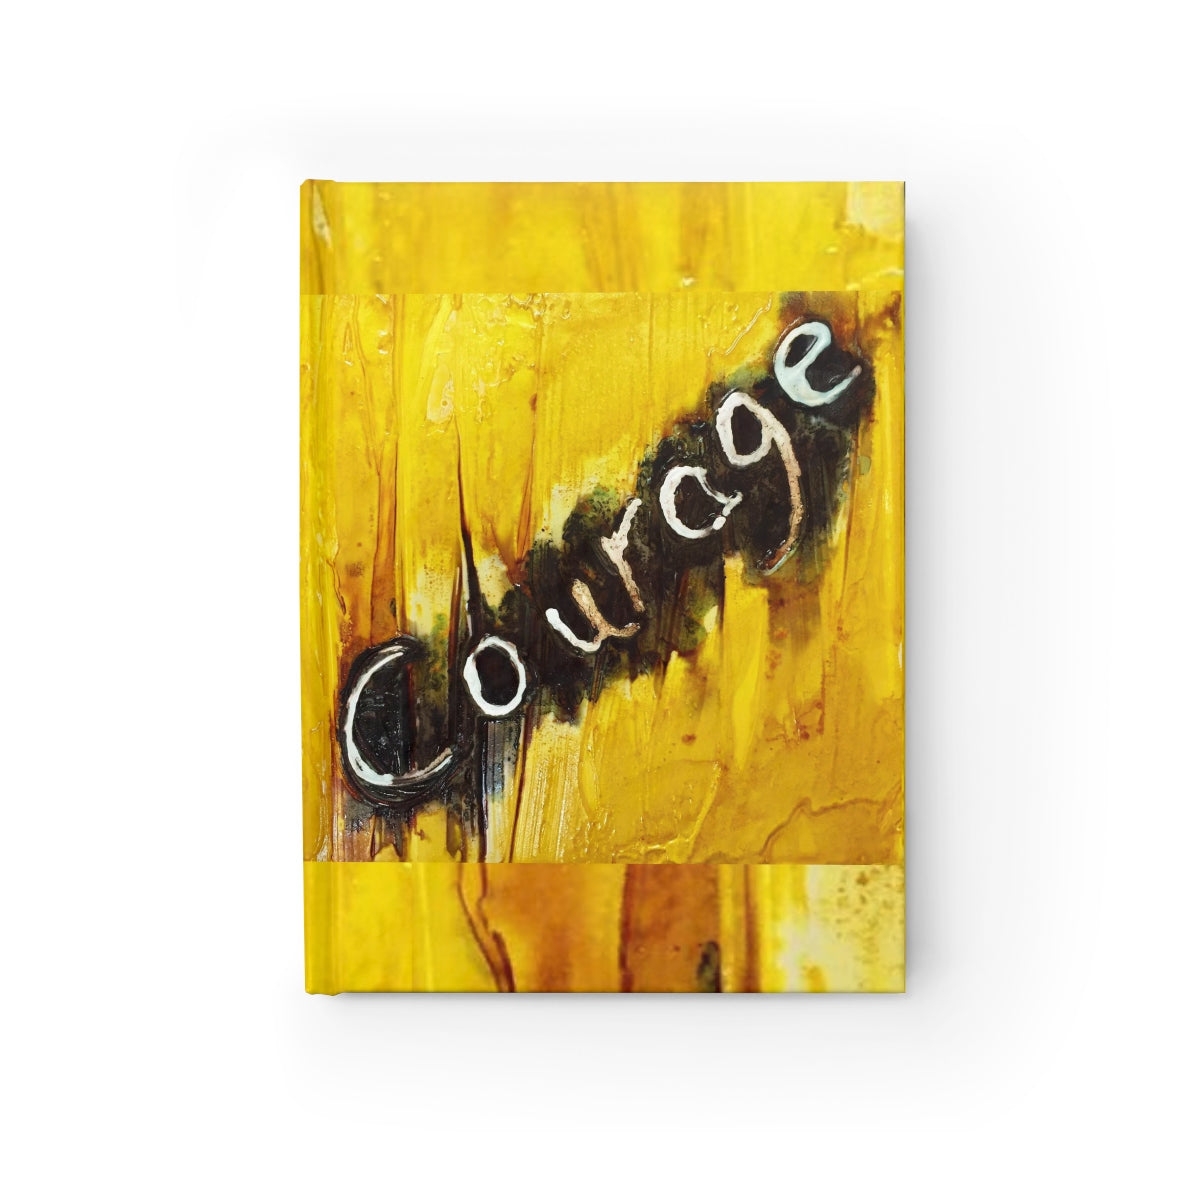 Courage Journal - Ruled Line